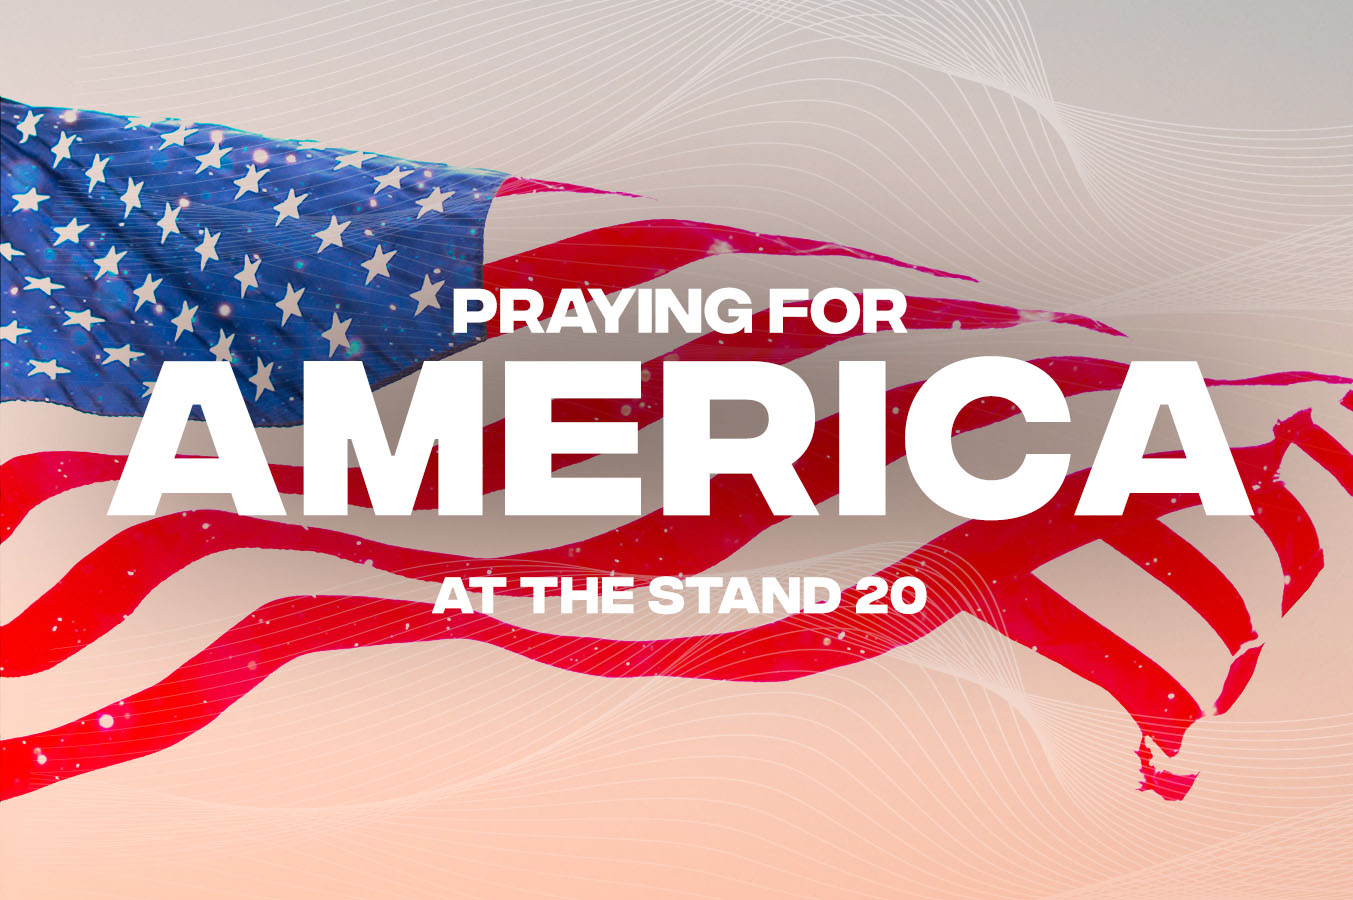 Praying for America at The Stand 20